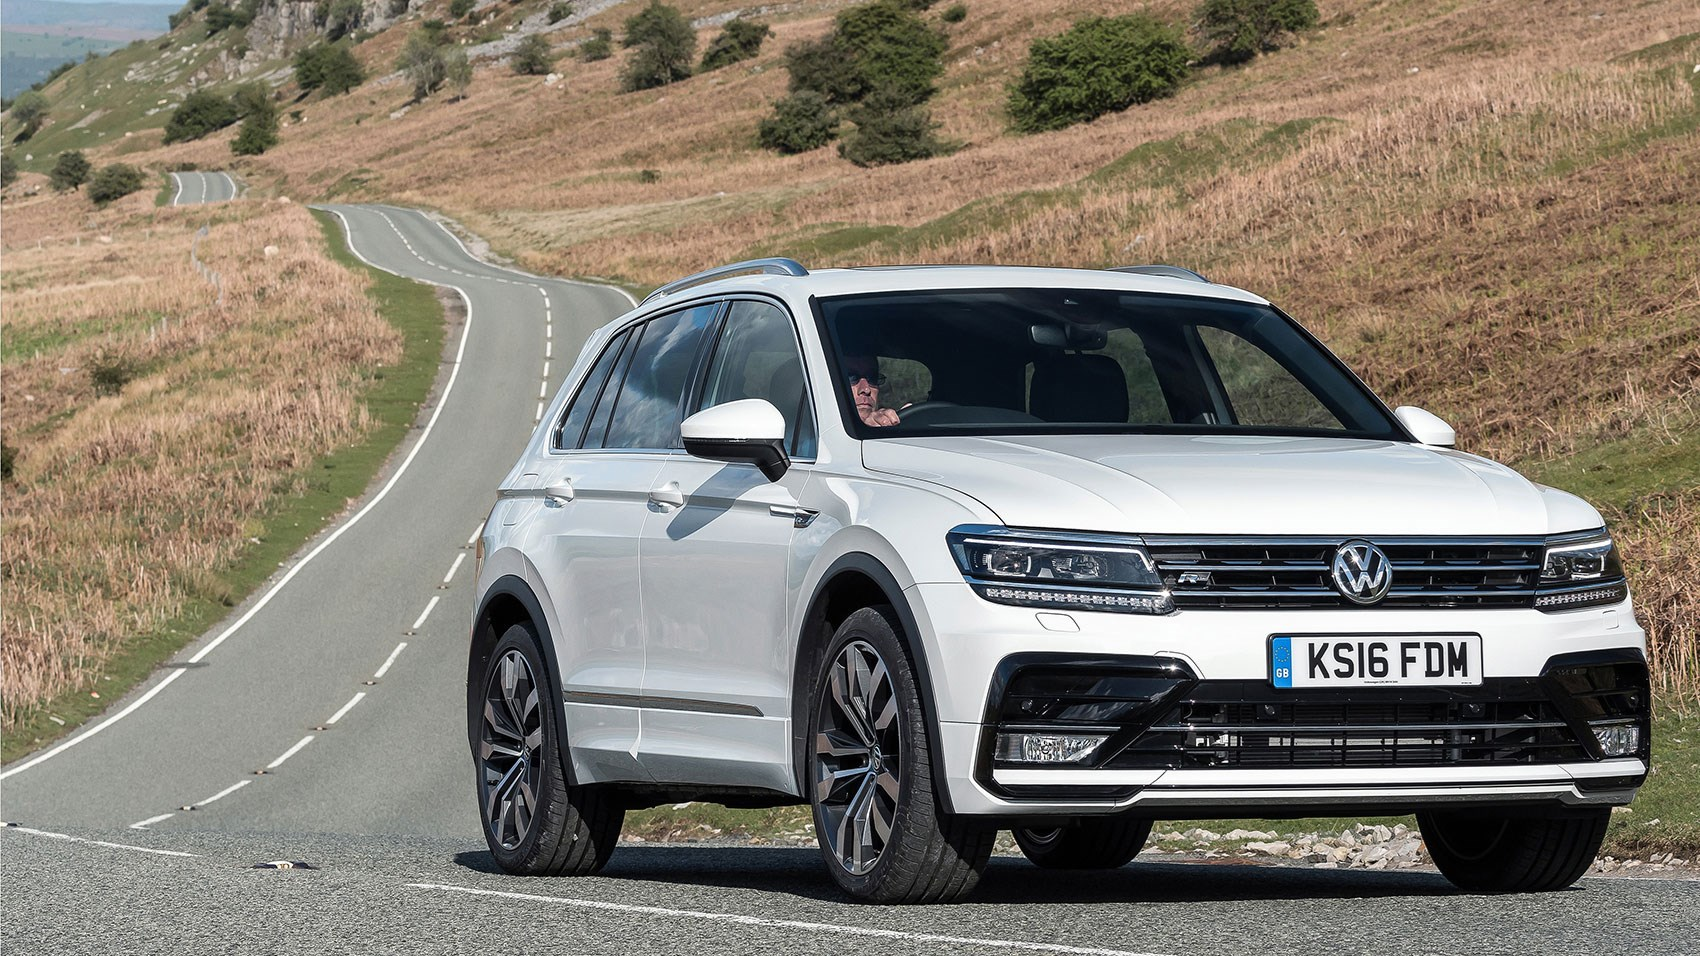 vw tiguan r line 2 0 tdi 150 4motion dsg 2016 review by car magazine. Black Bedroom Furniture Sets. Home Design Ideas